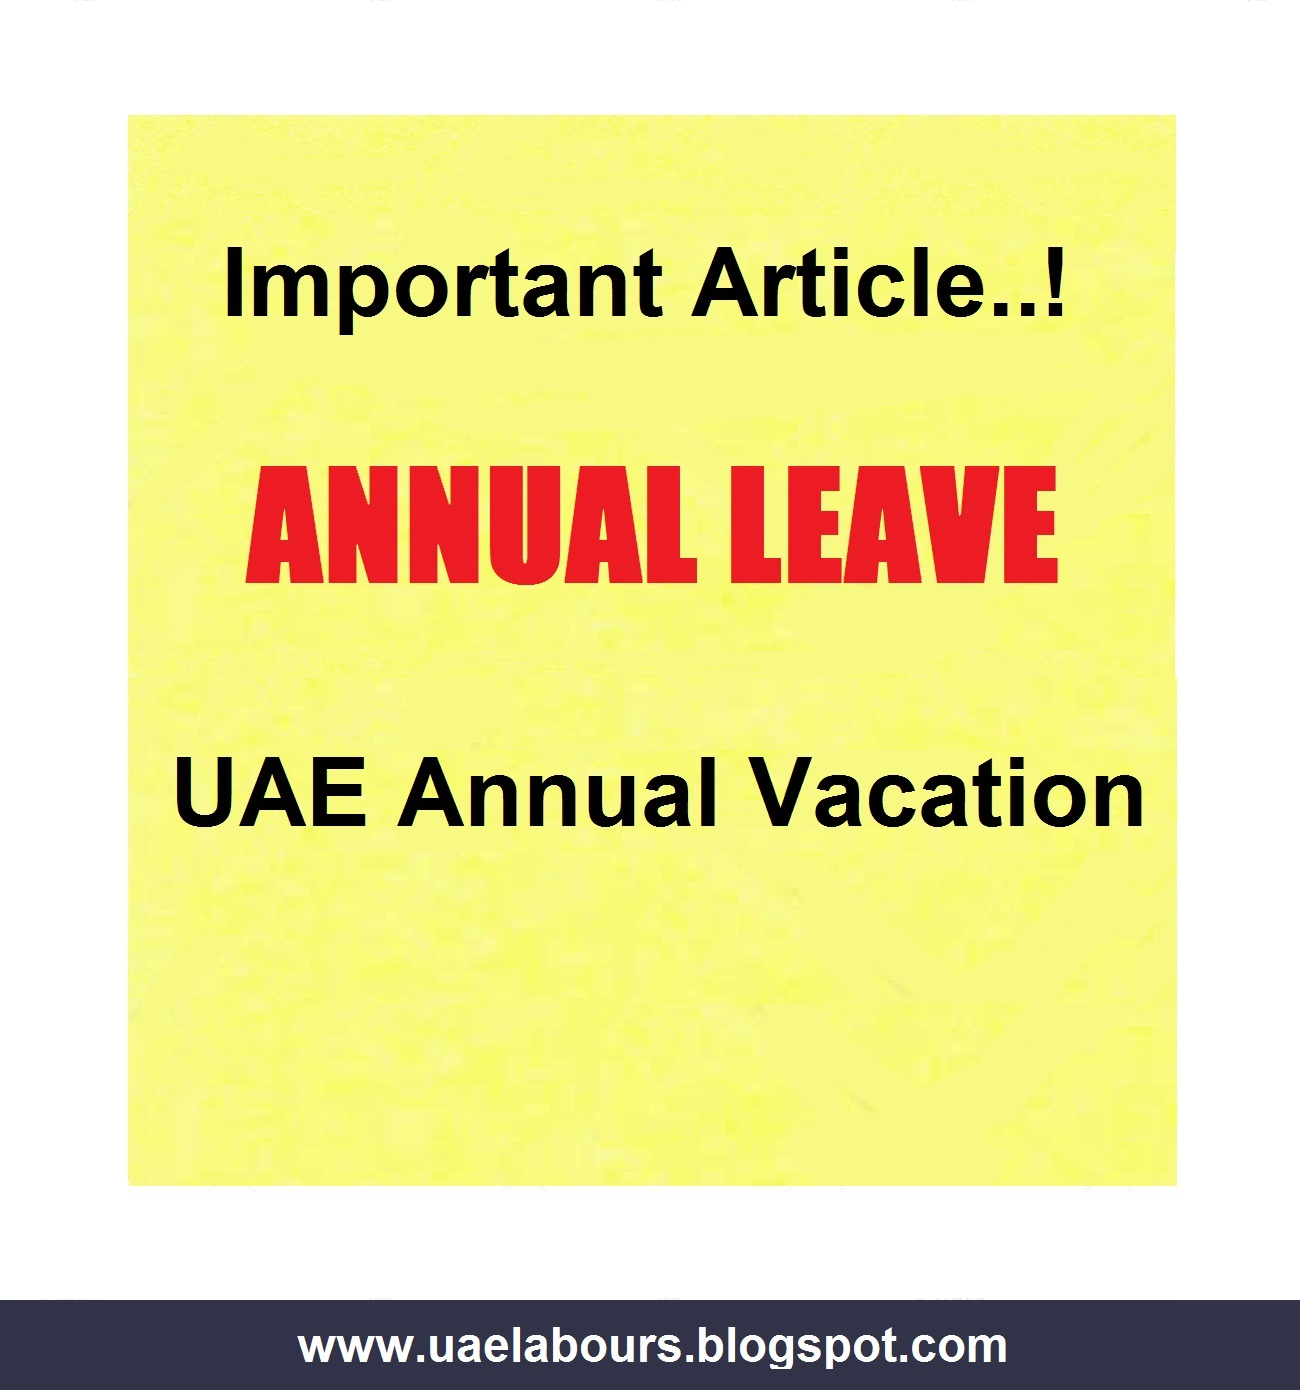 Uae annual leave and vacation labour law uae labours uae annual leave law 2016 uae annual leave salary law annual vacation dubai spiritdancerdesigns